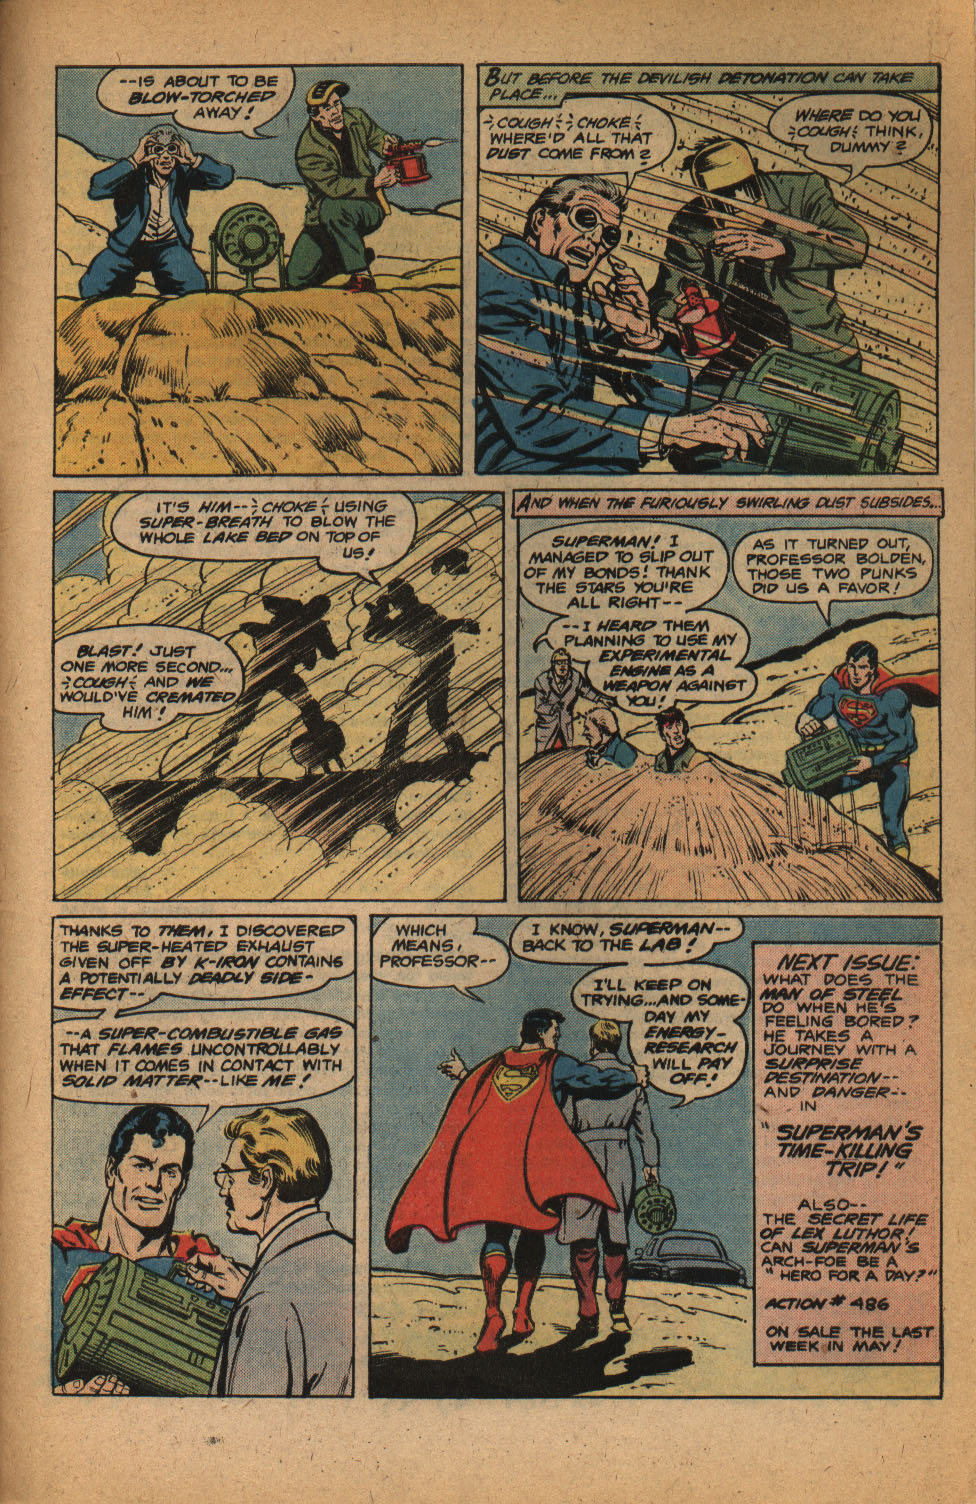 Read online Action Comics (1938) comic -  Issue #485 - 31